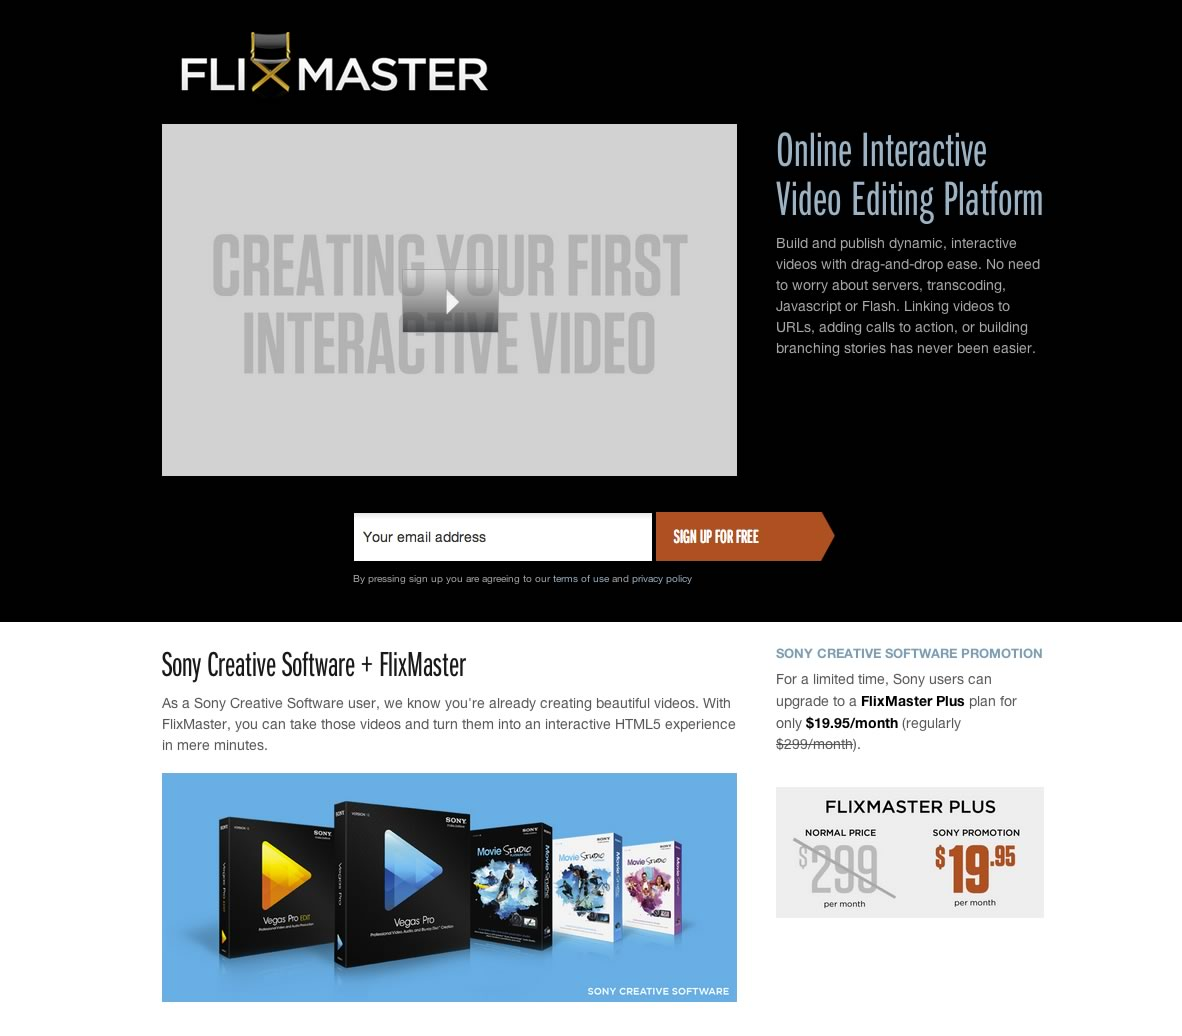 flixmaster 04 FlixMaster partners with Sony Creative Software to bring interactive videos tools to a broader audience